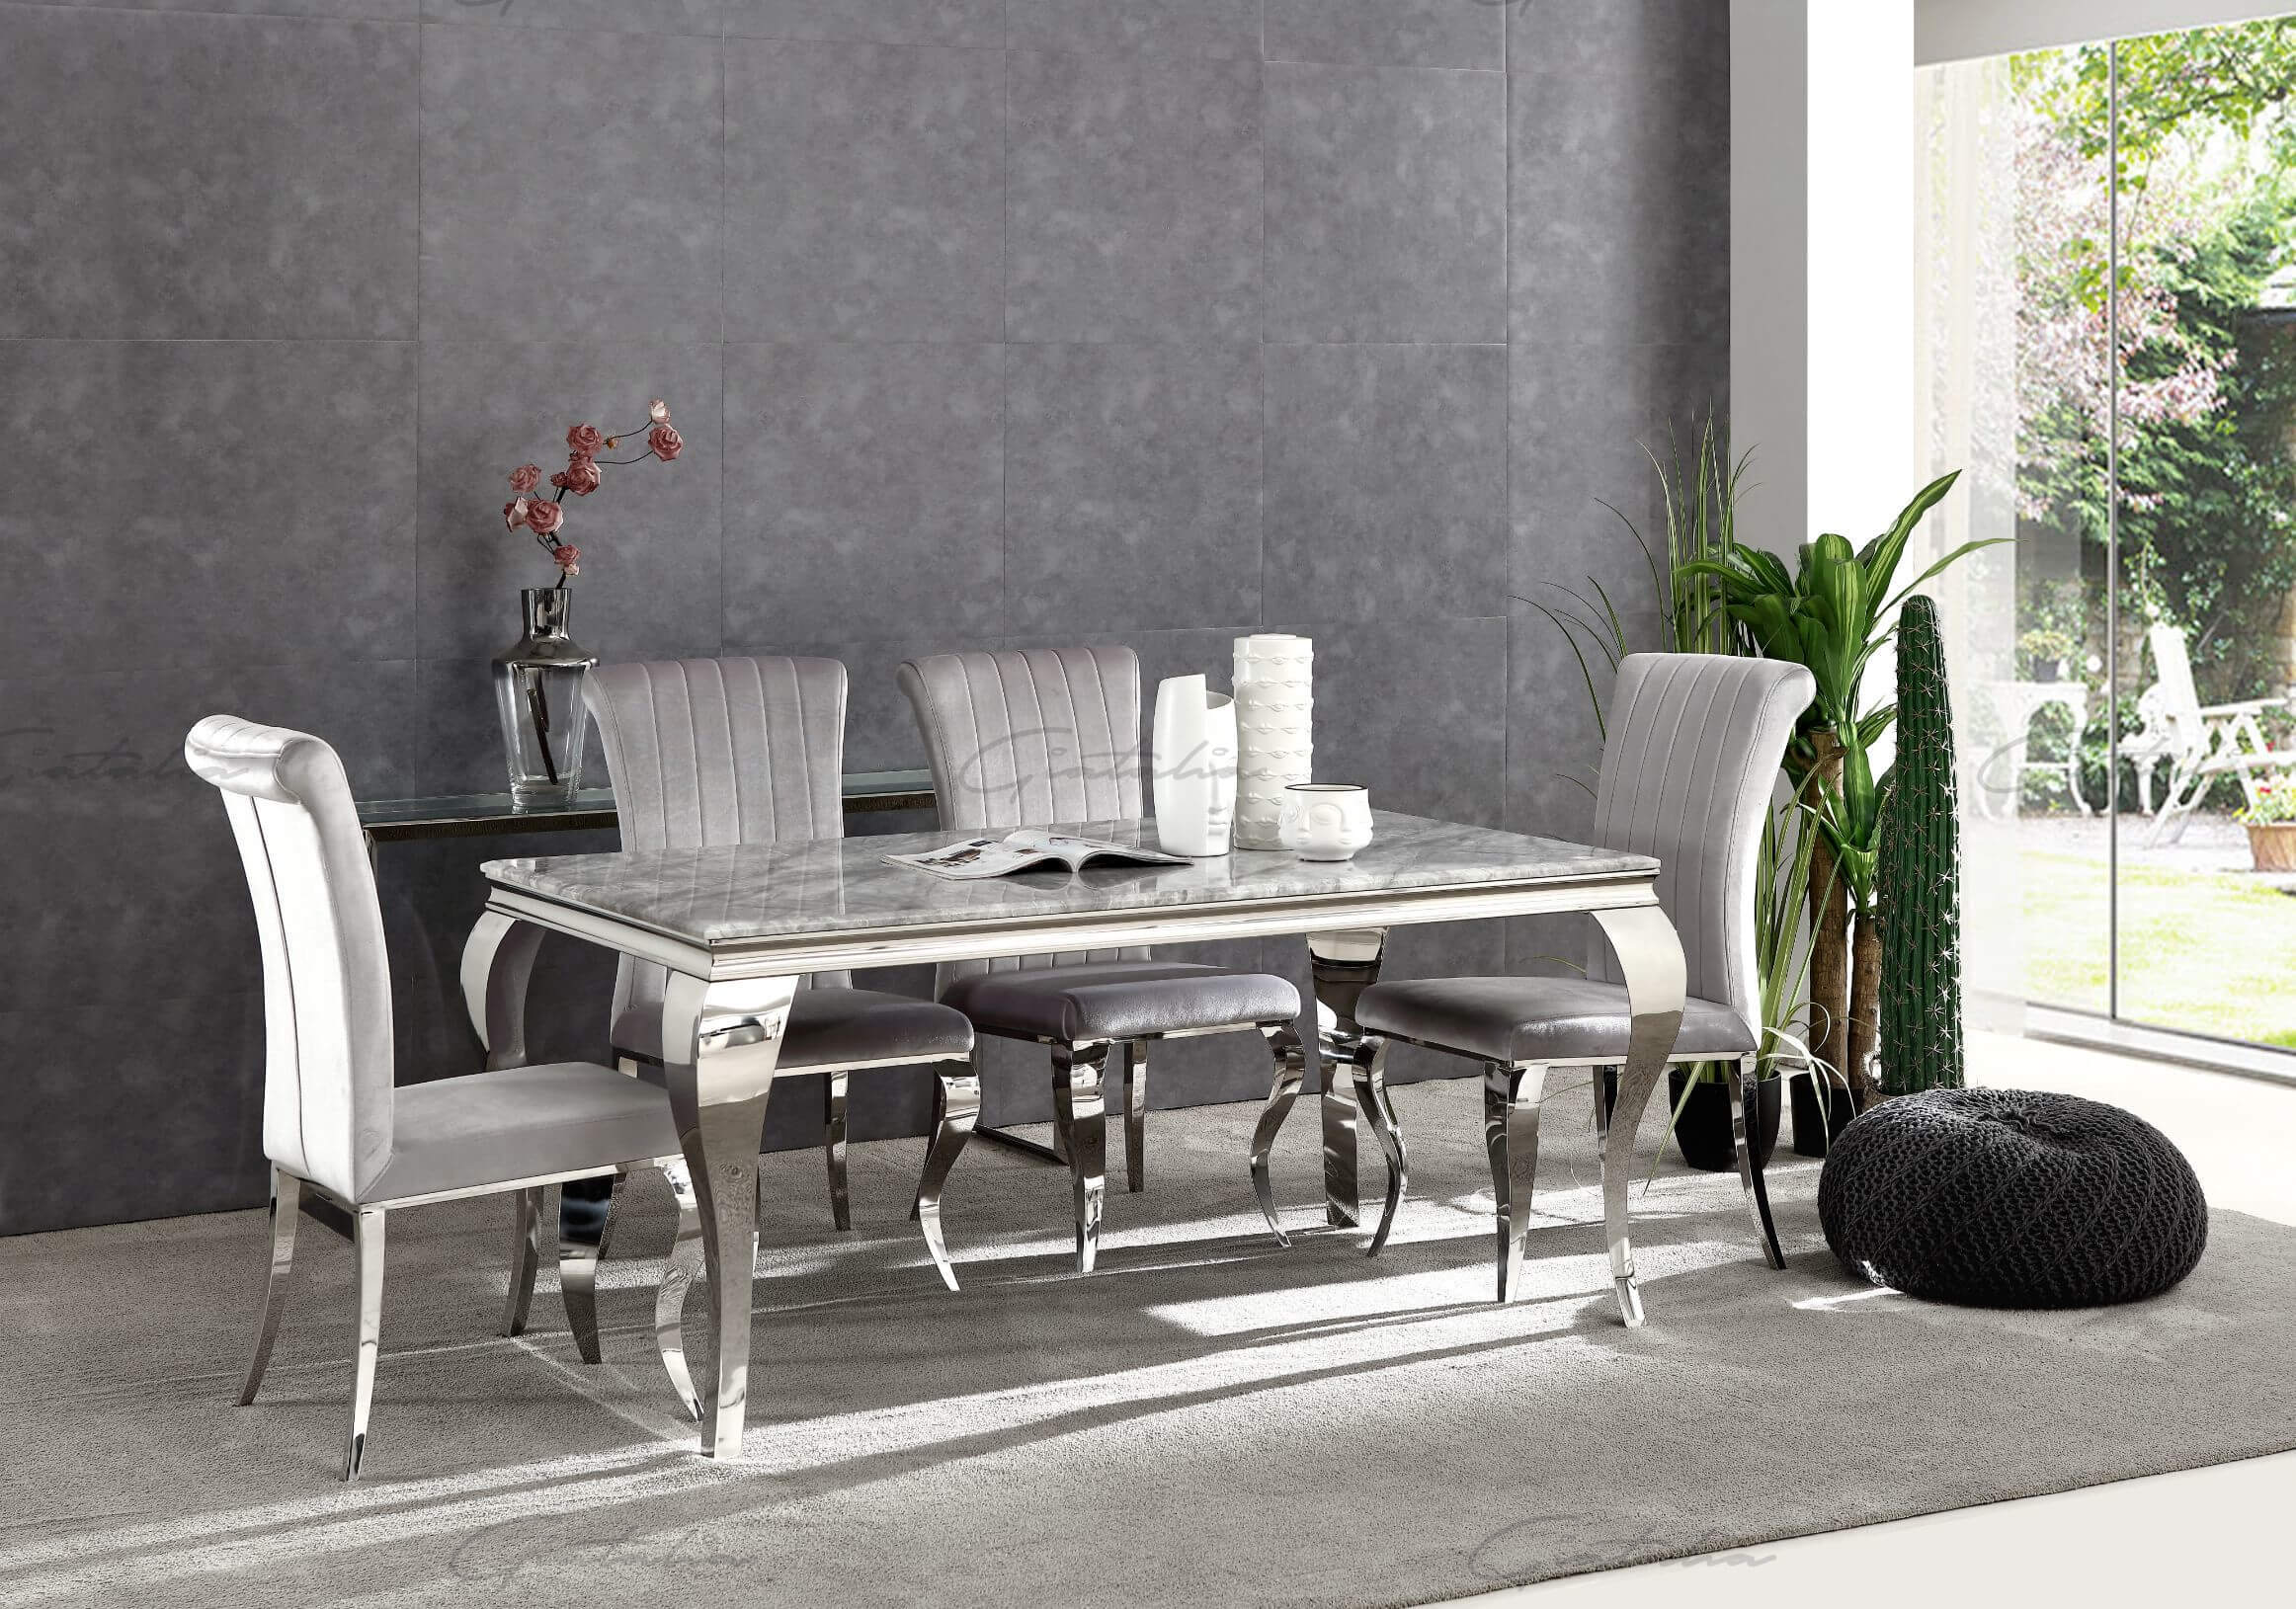 Grey Marble Dining Table and 4, 6 Grey Velvet Chairs